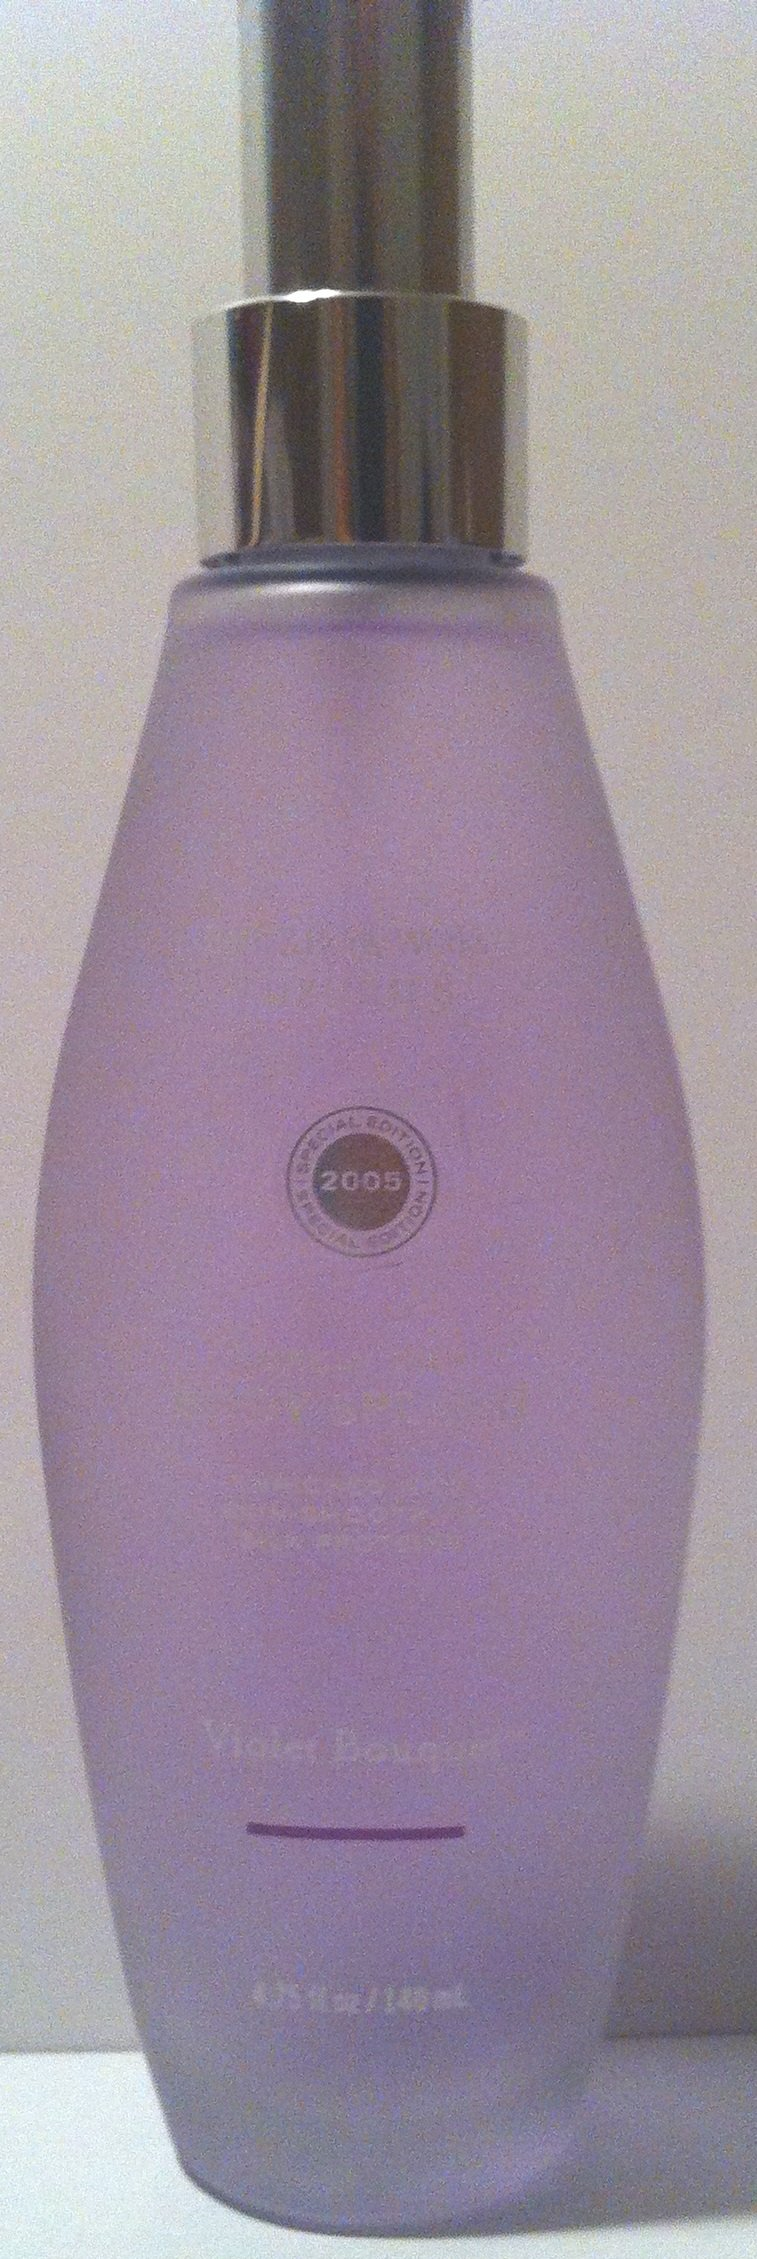 Bath & Body Works Violet Bouquet Purely Silk Body Splash with Skin Smoothing Silk Proteins 4.75 Fl Oz